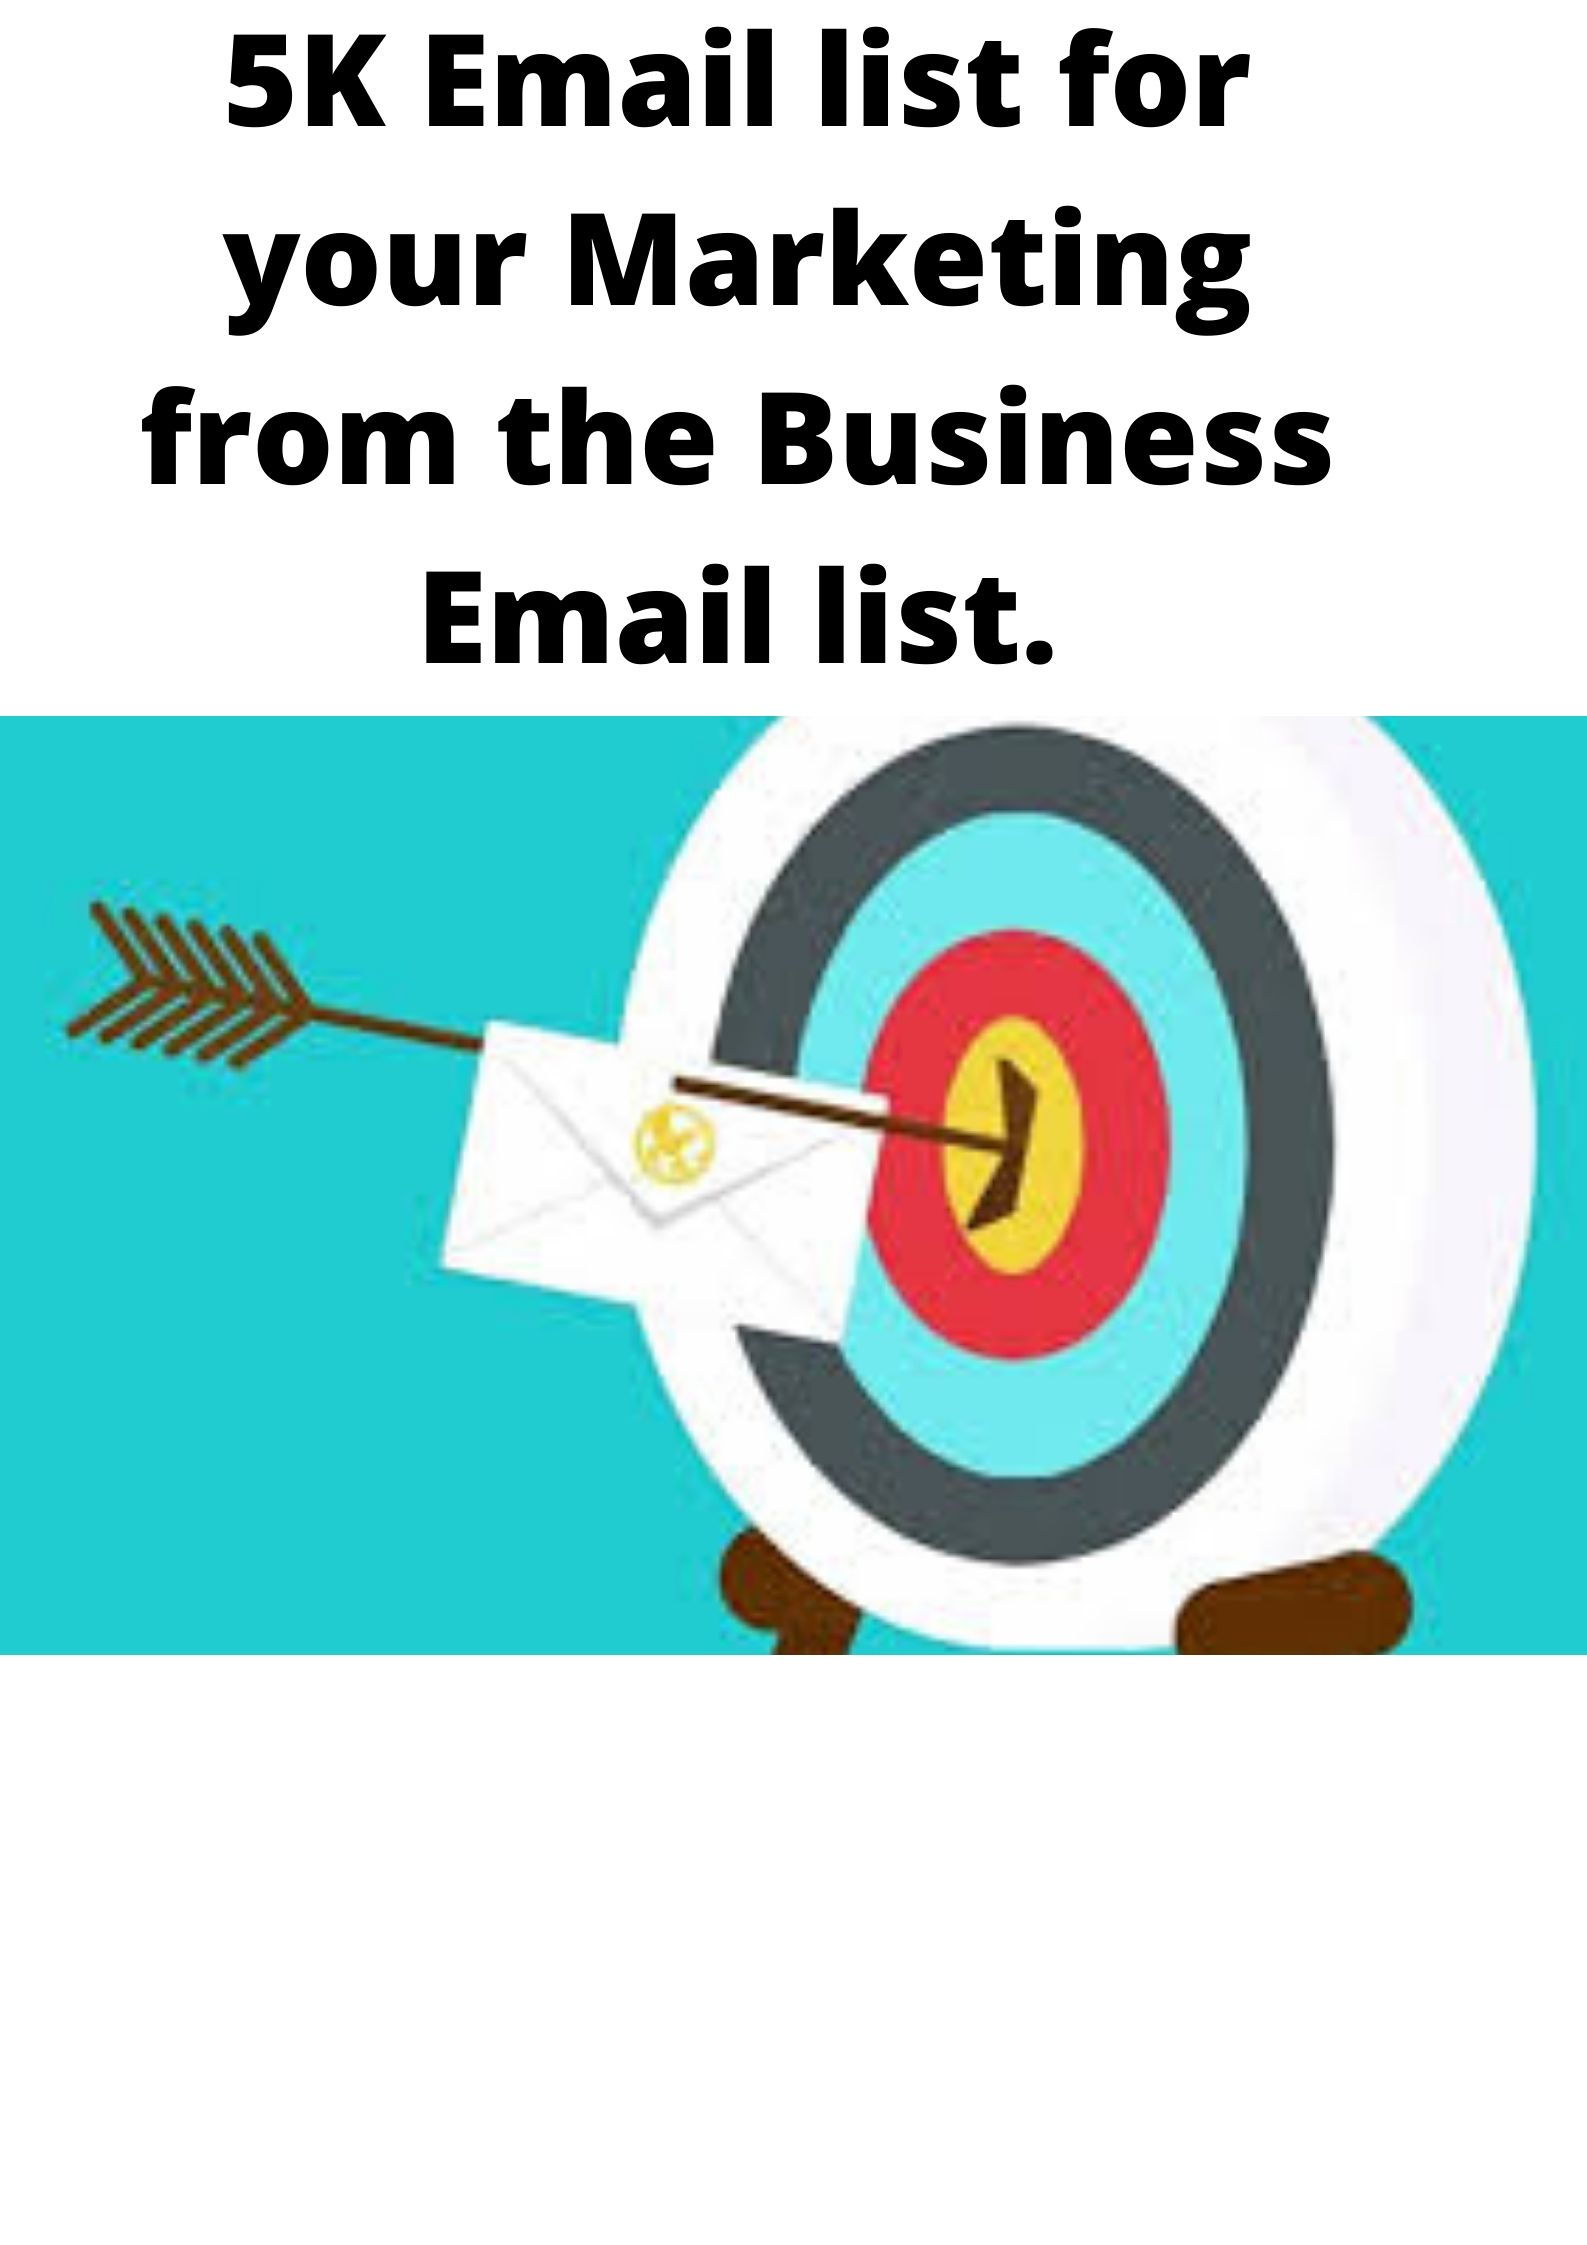 5K Email list for your Marketing from the Business Email list.